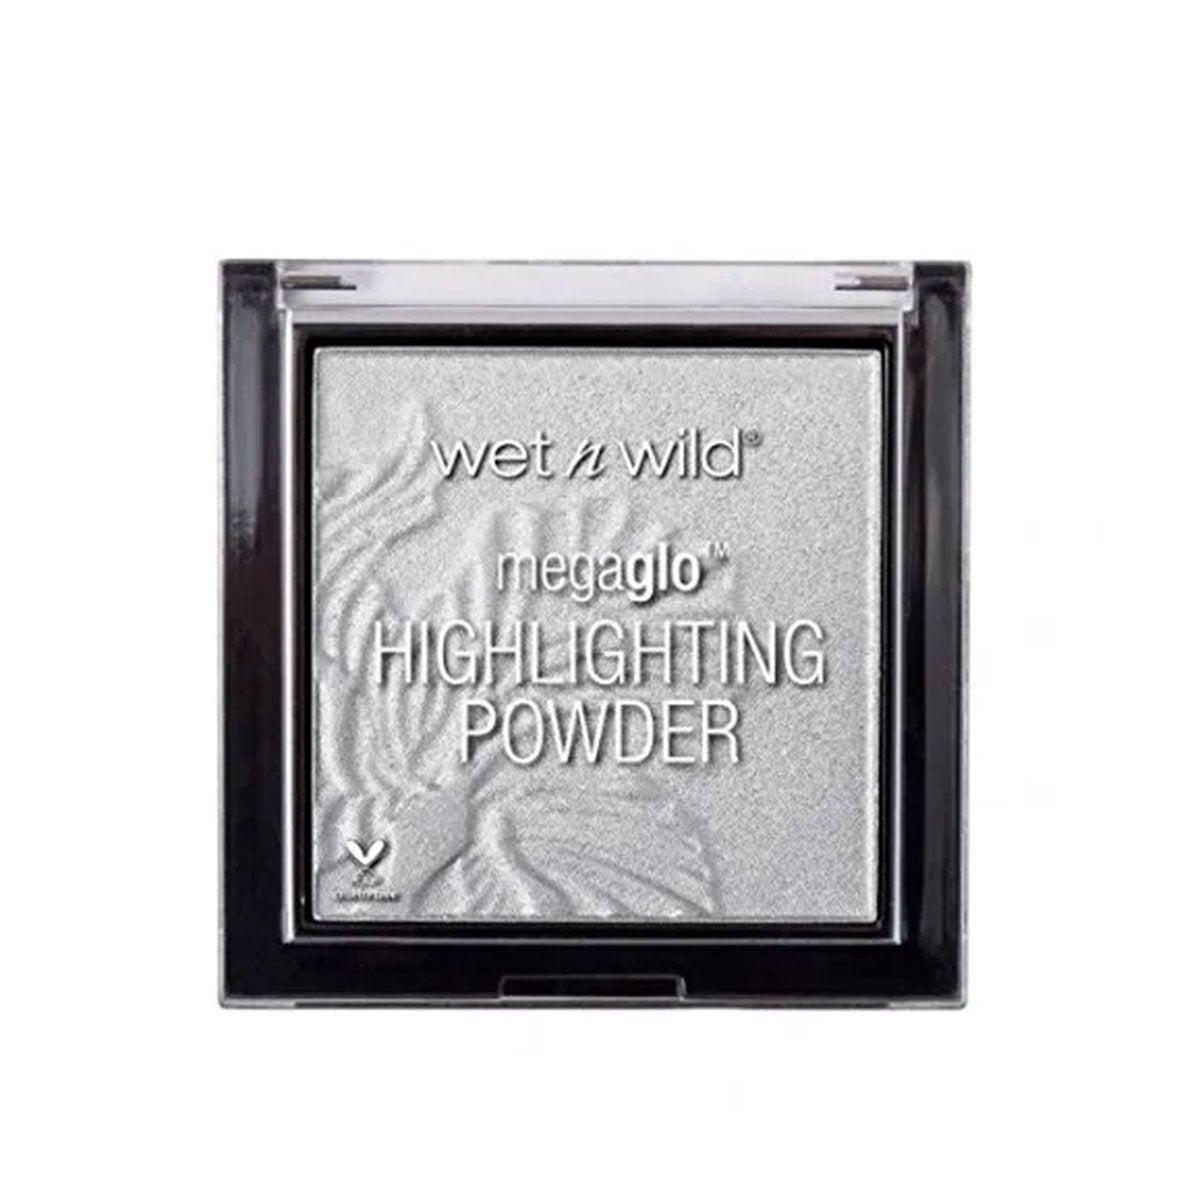 MEGA GLO HIGHLIGHTING POWDER DIAMOND LILY - WET N WILD